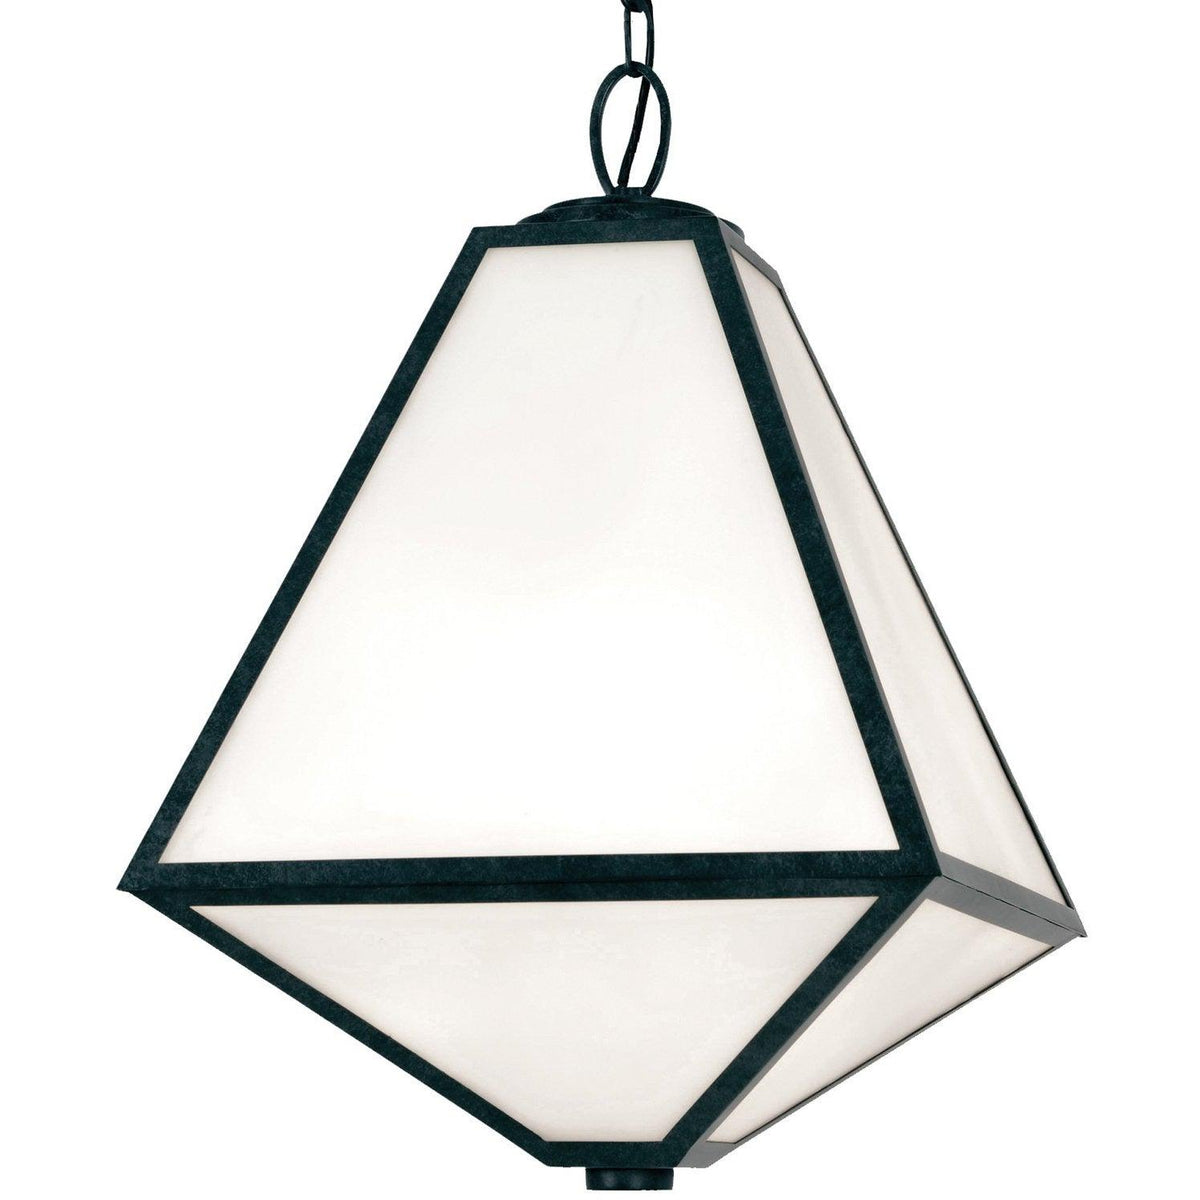 Crystorama - GLA-9705-OP-BC - Three Light Outdoor Chandelier - Glacier - Black Charcoal